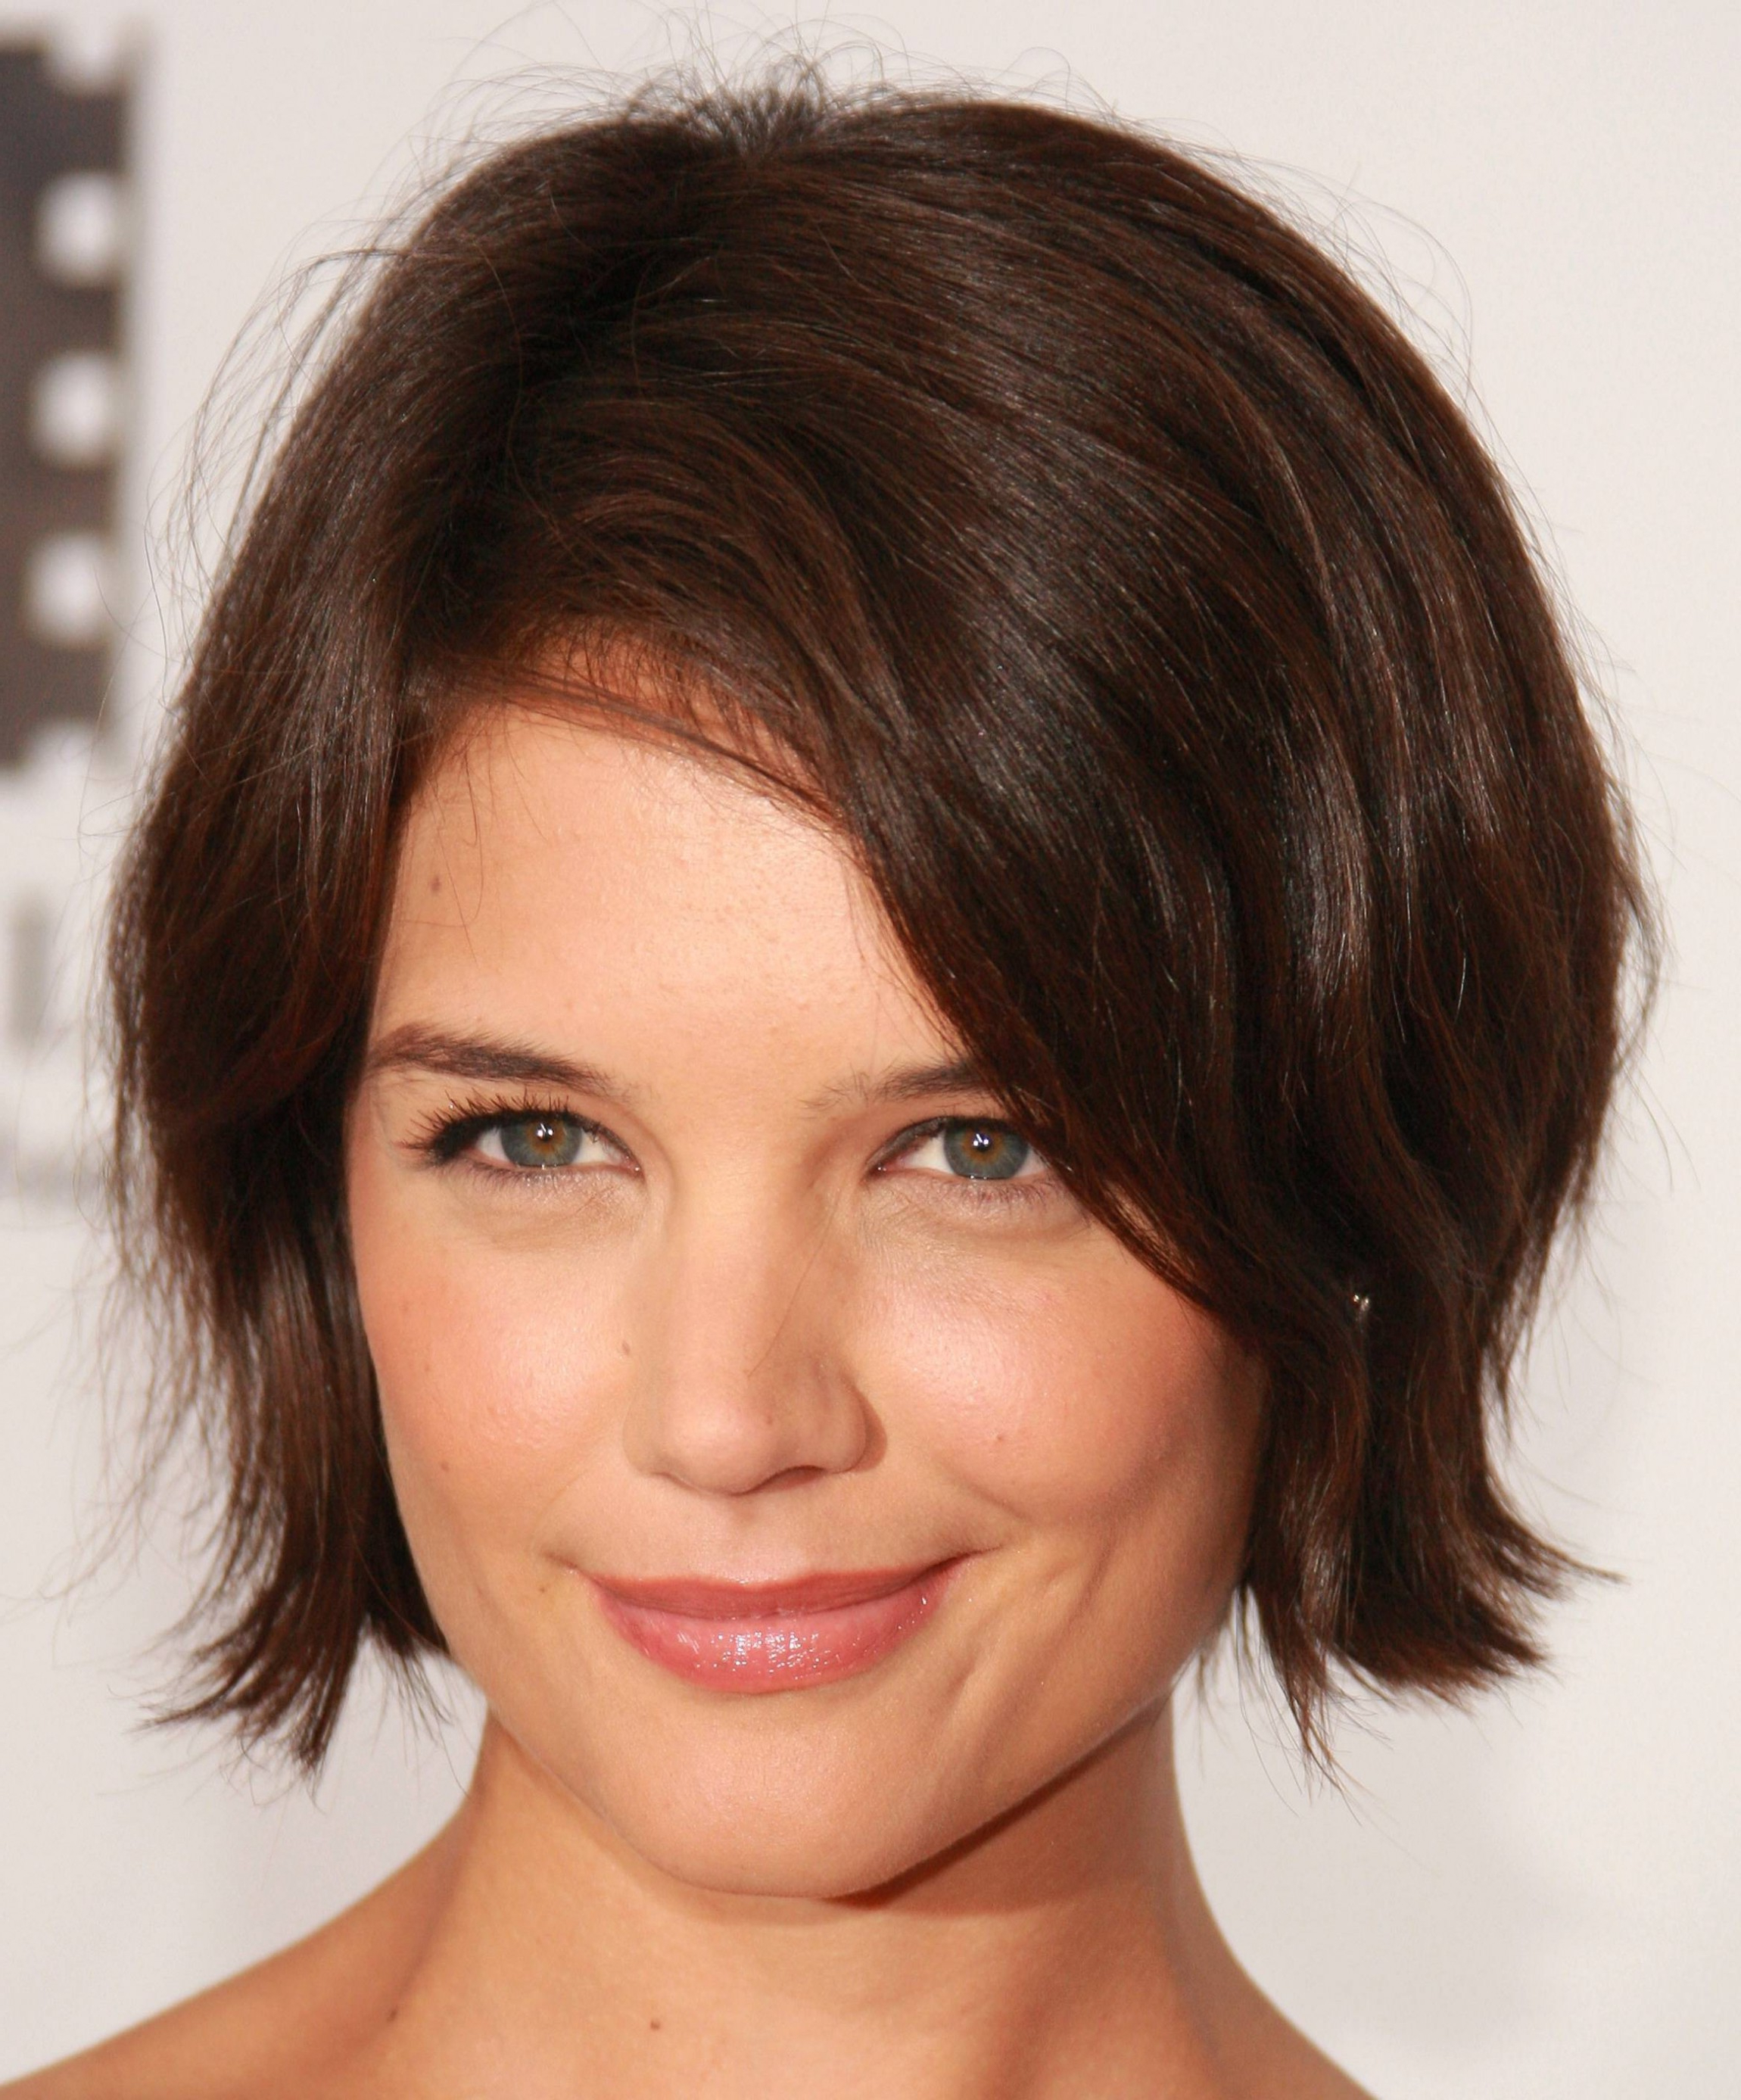 Best Short Hairstyles – Cute Hair Cut Guide For Round Face Shape Pertaining To Edgy Short Hairstyles For Round Faces (View 17 of 25)